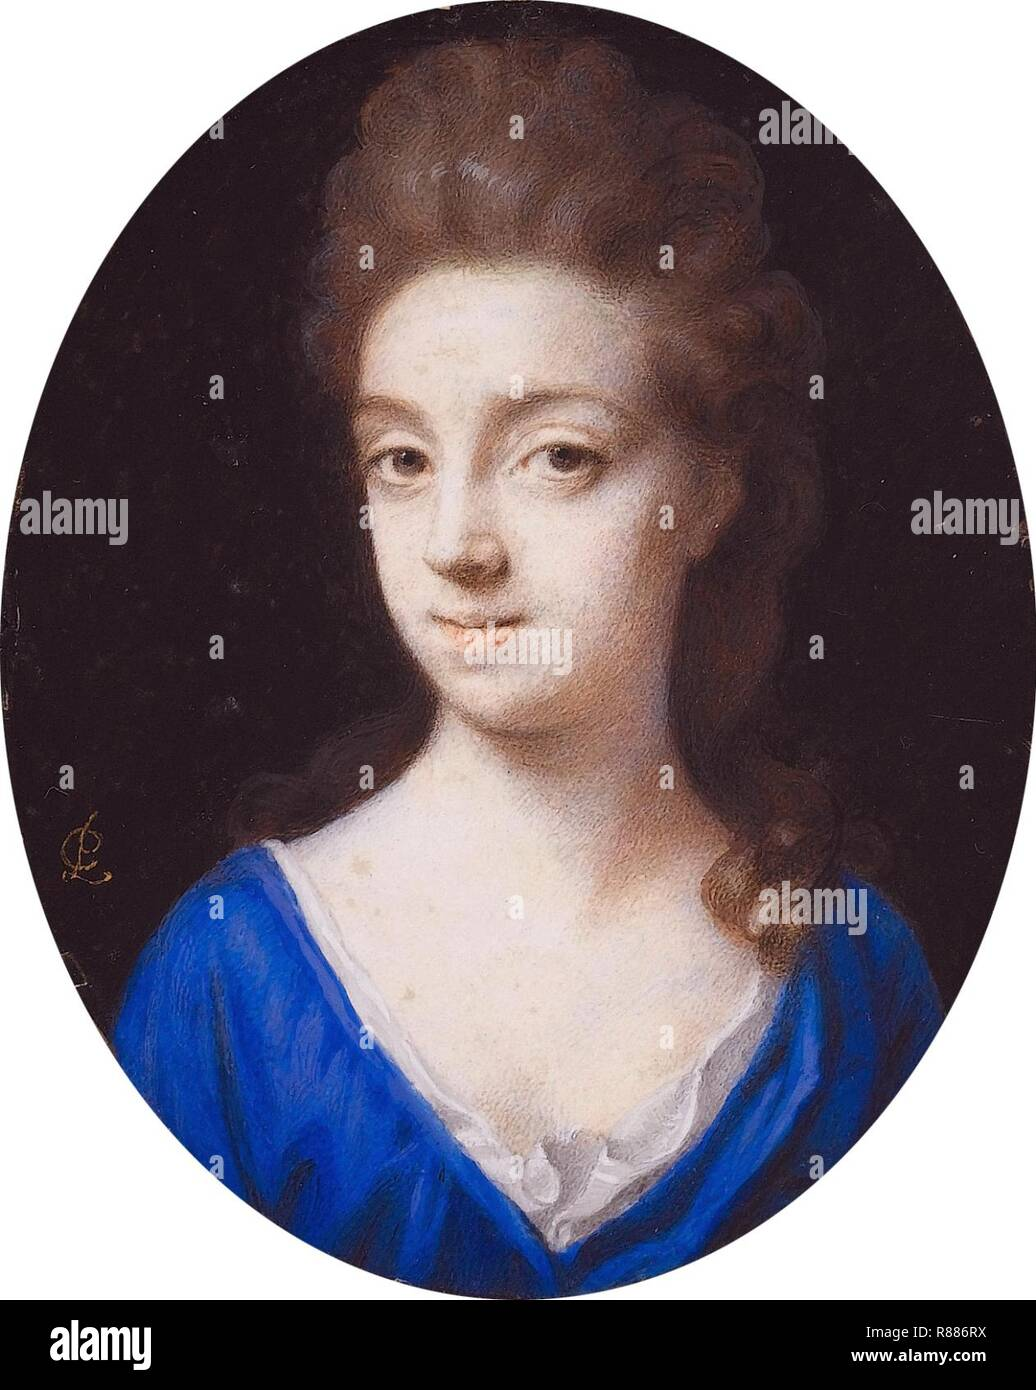 Carey, Countess of Peterborough, by Peter Cross (c 1650-1724). - Stock Image